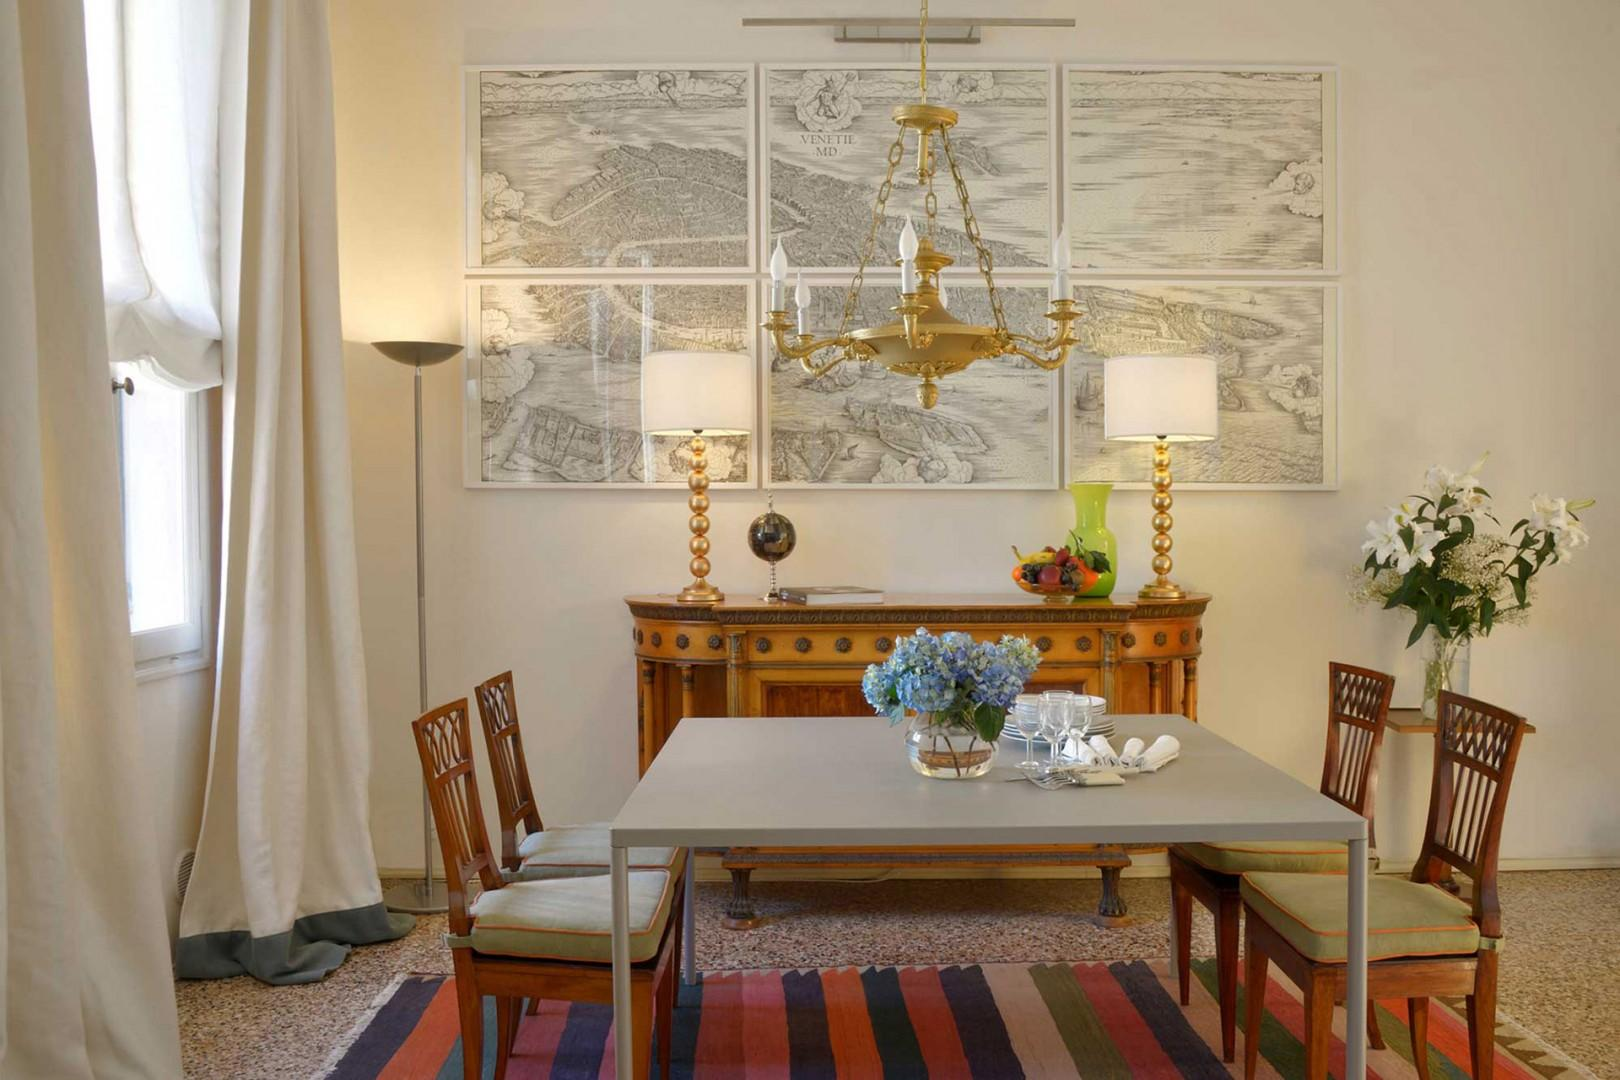 Dining room with elegant antique sideboard and specially designed chairs.